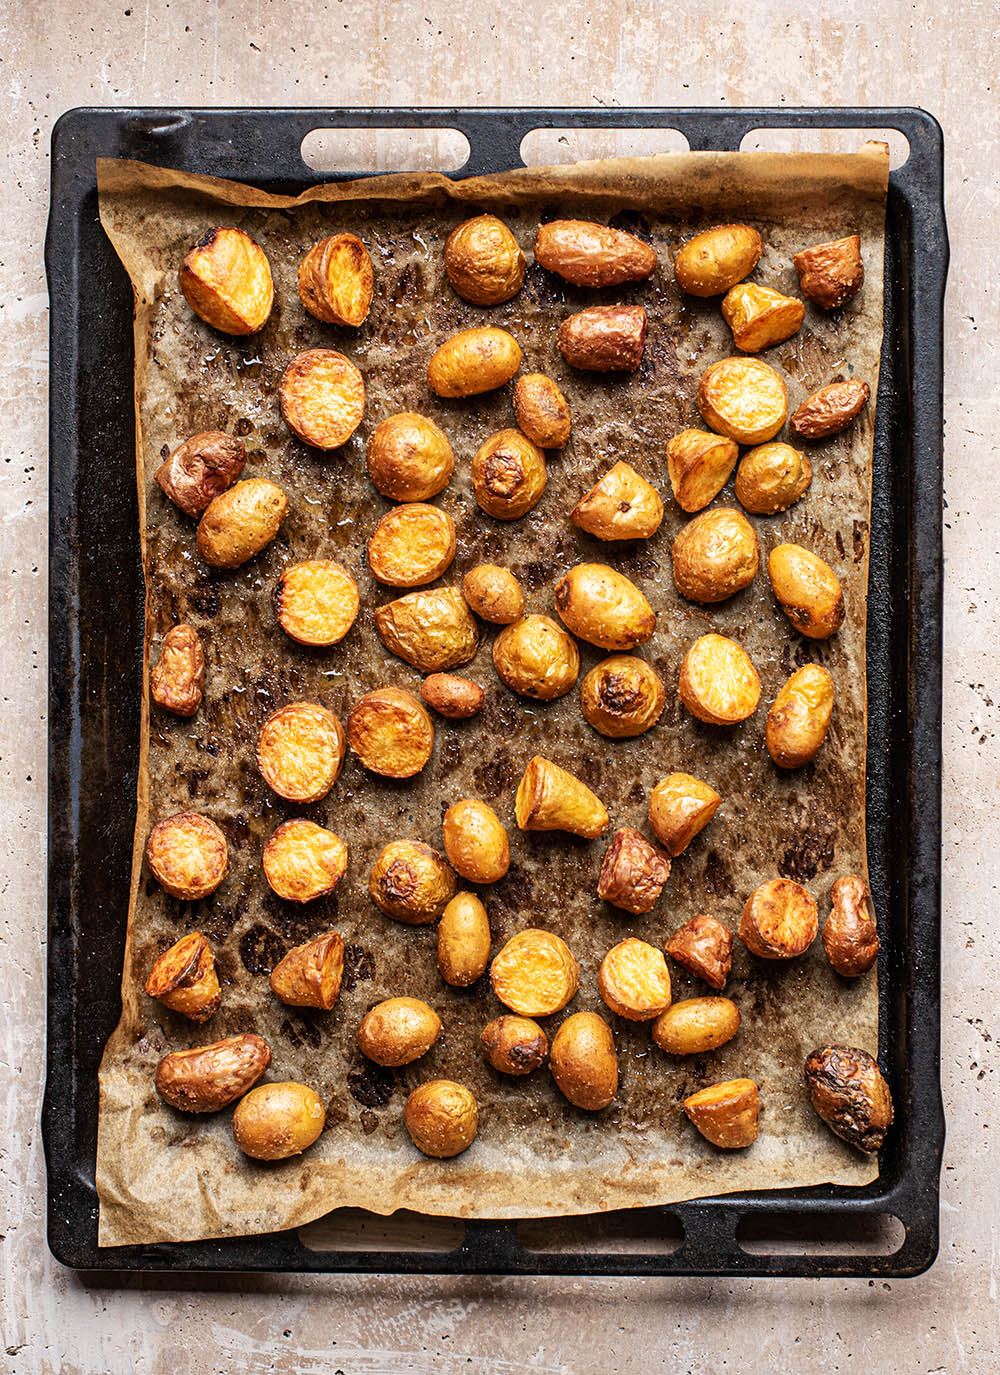 Potatoes on a baking sheet after roasting.